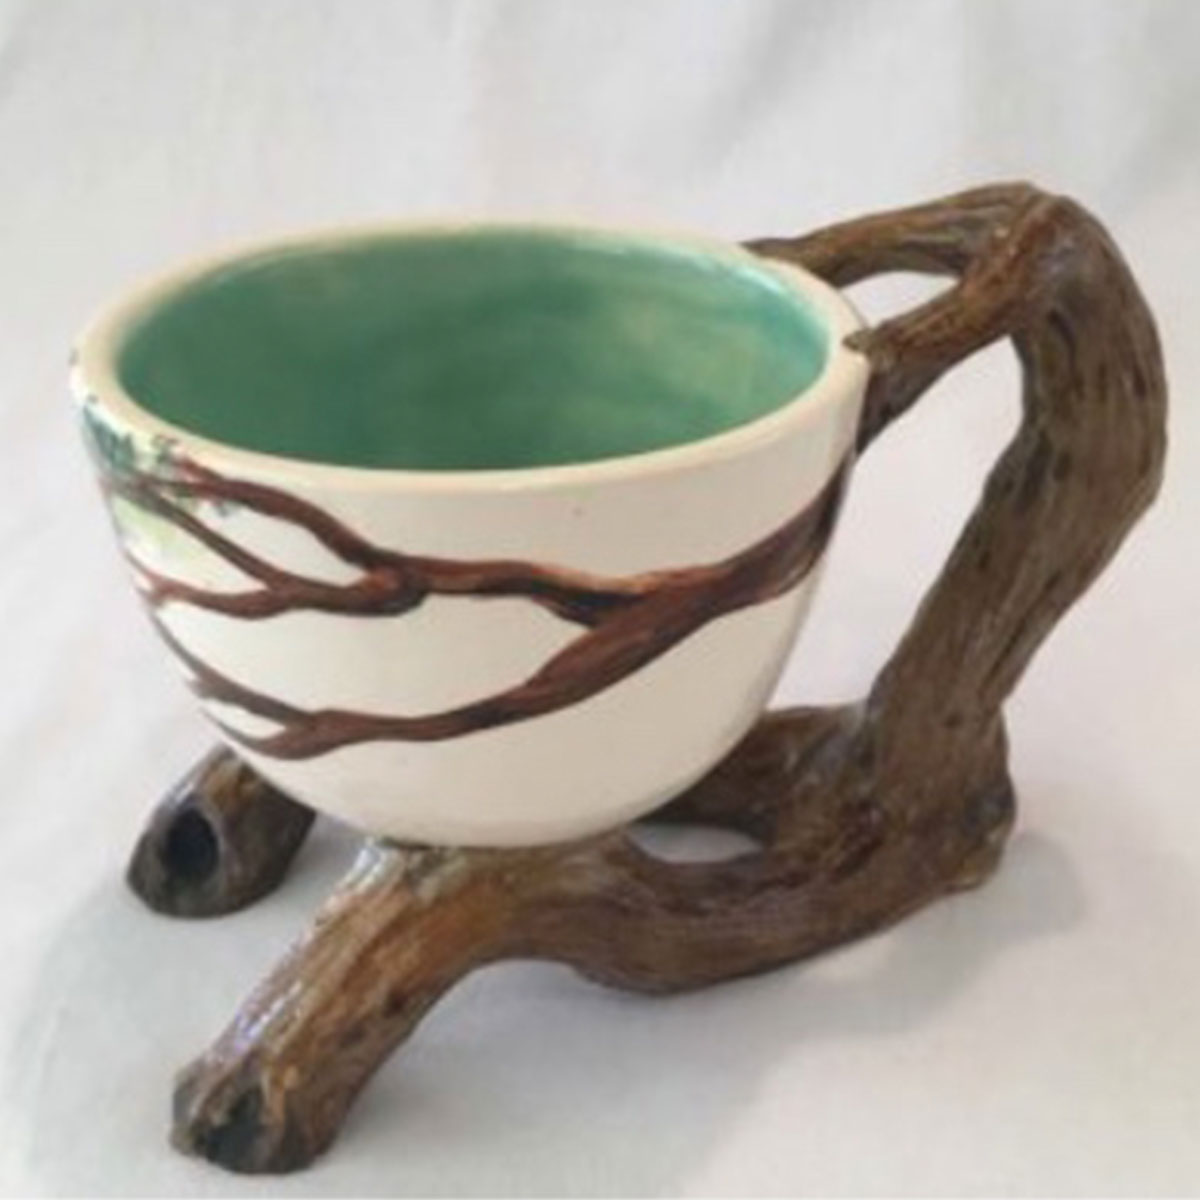 Awd Dog Studios - Knotty Wares are functional sculpture. Have your tea in a tree.